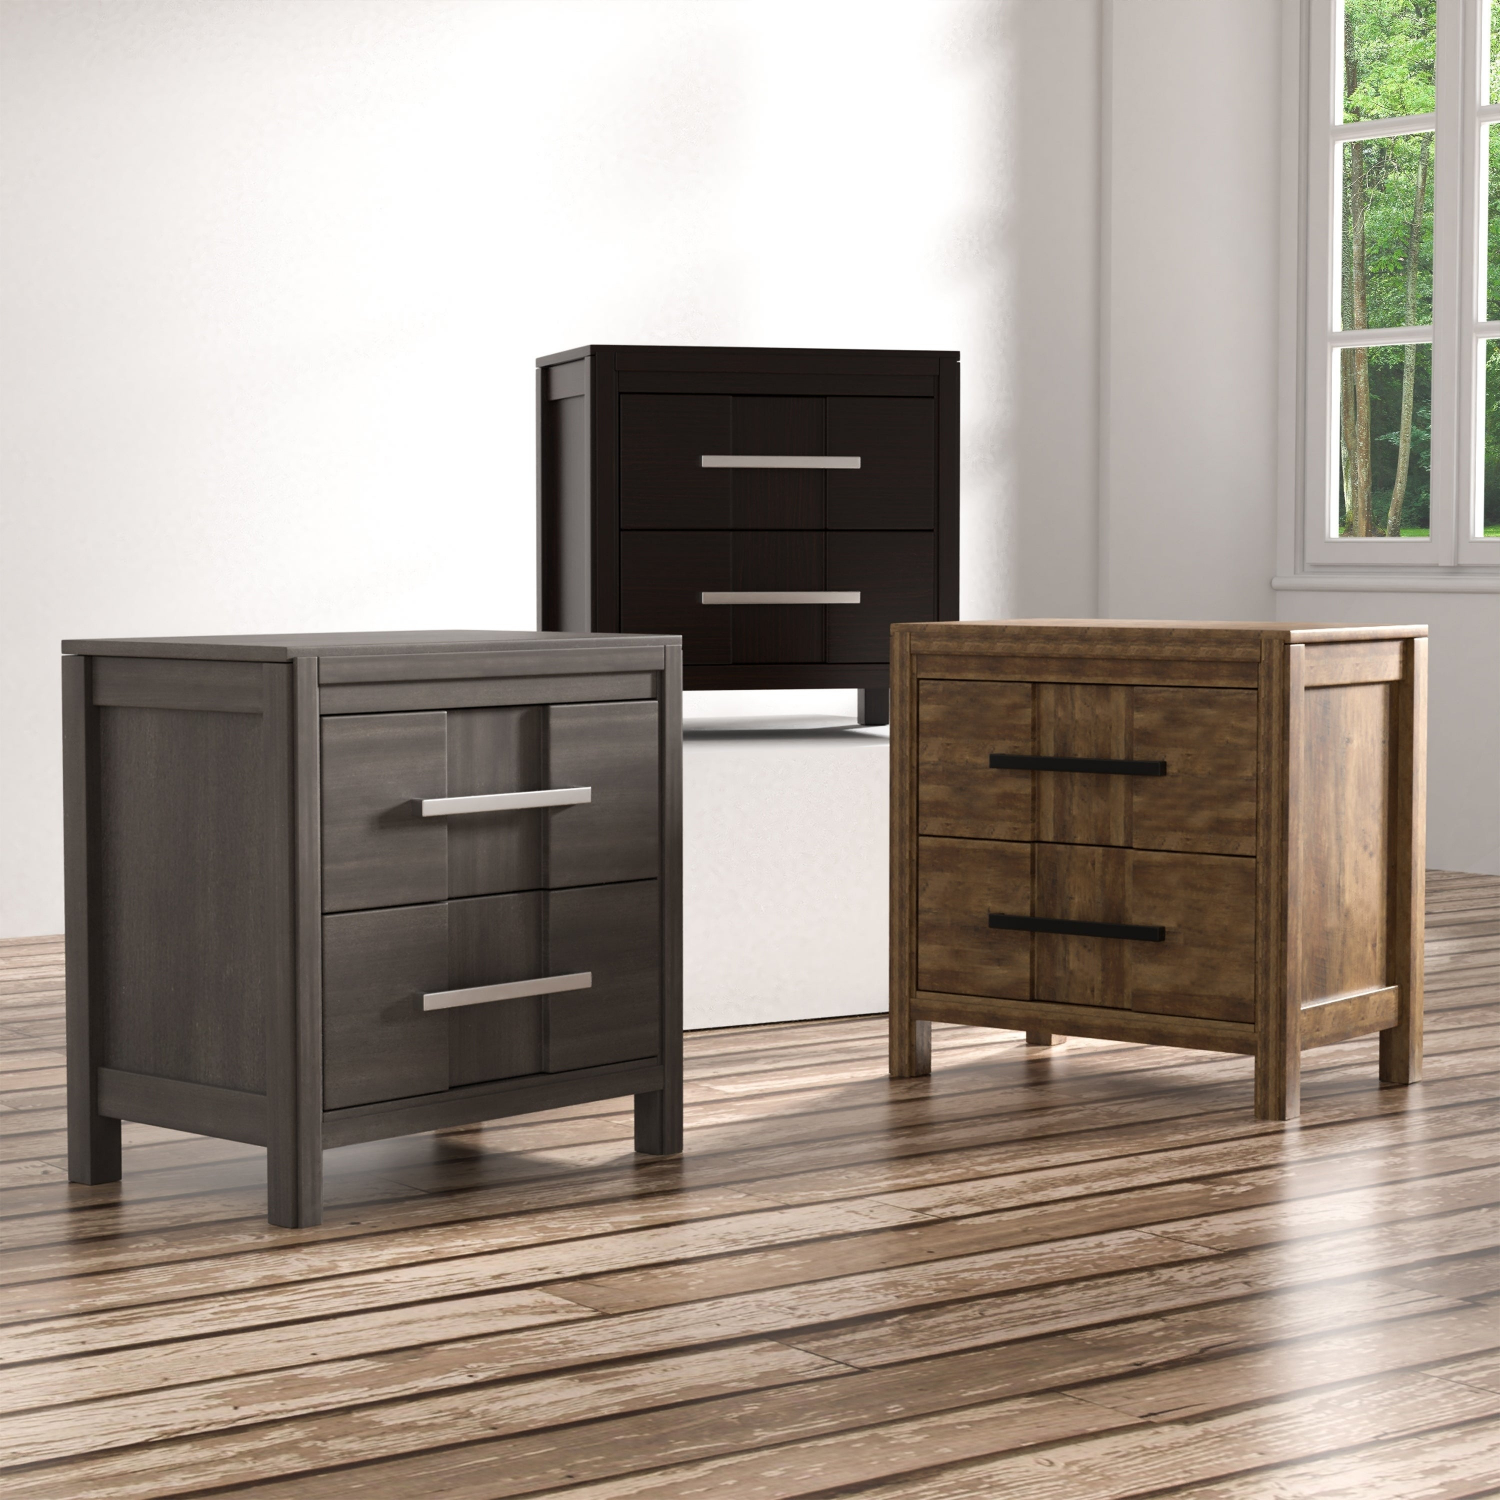 Details About Telke Contemporary Wood 2 Drawer Nightstand By Foa